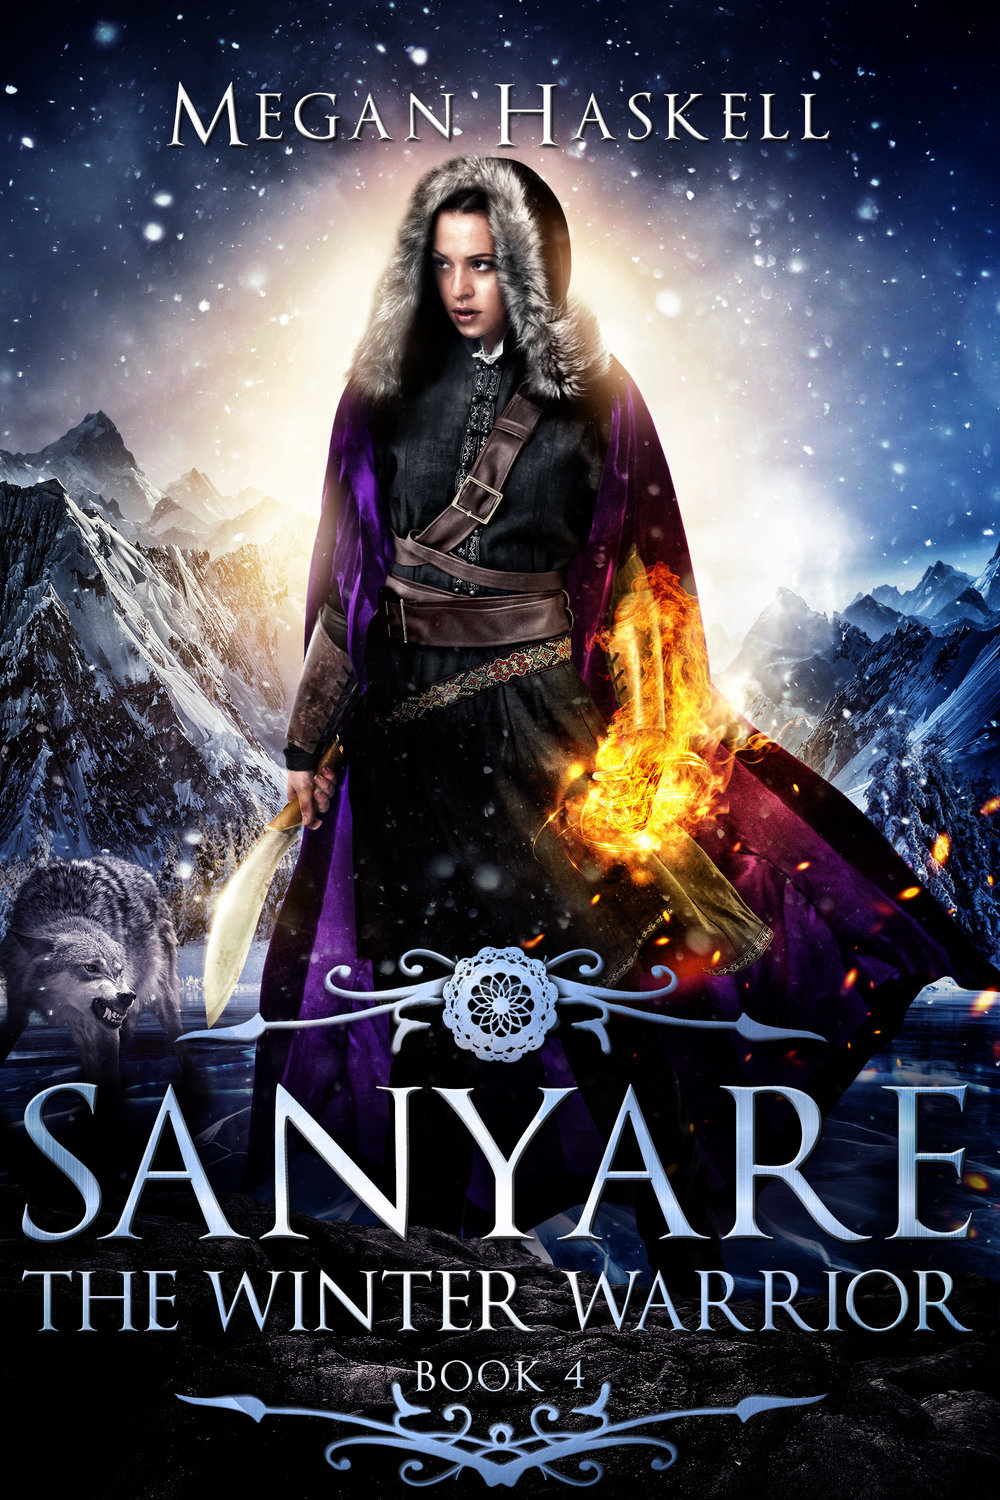 Sanyare The Winter Warrior